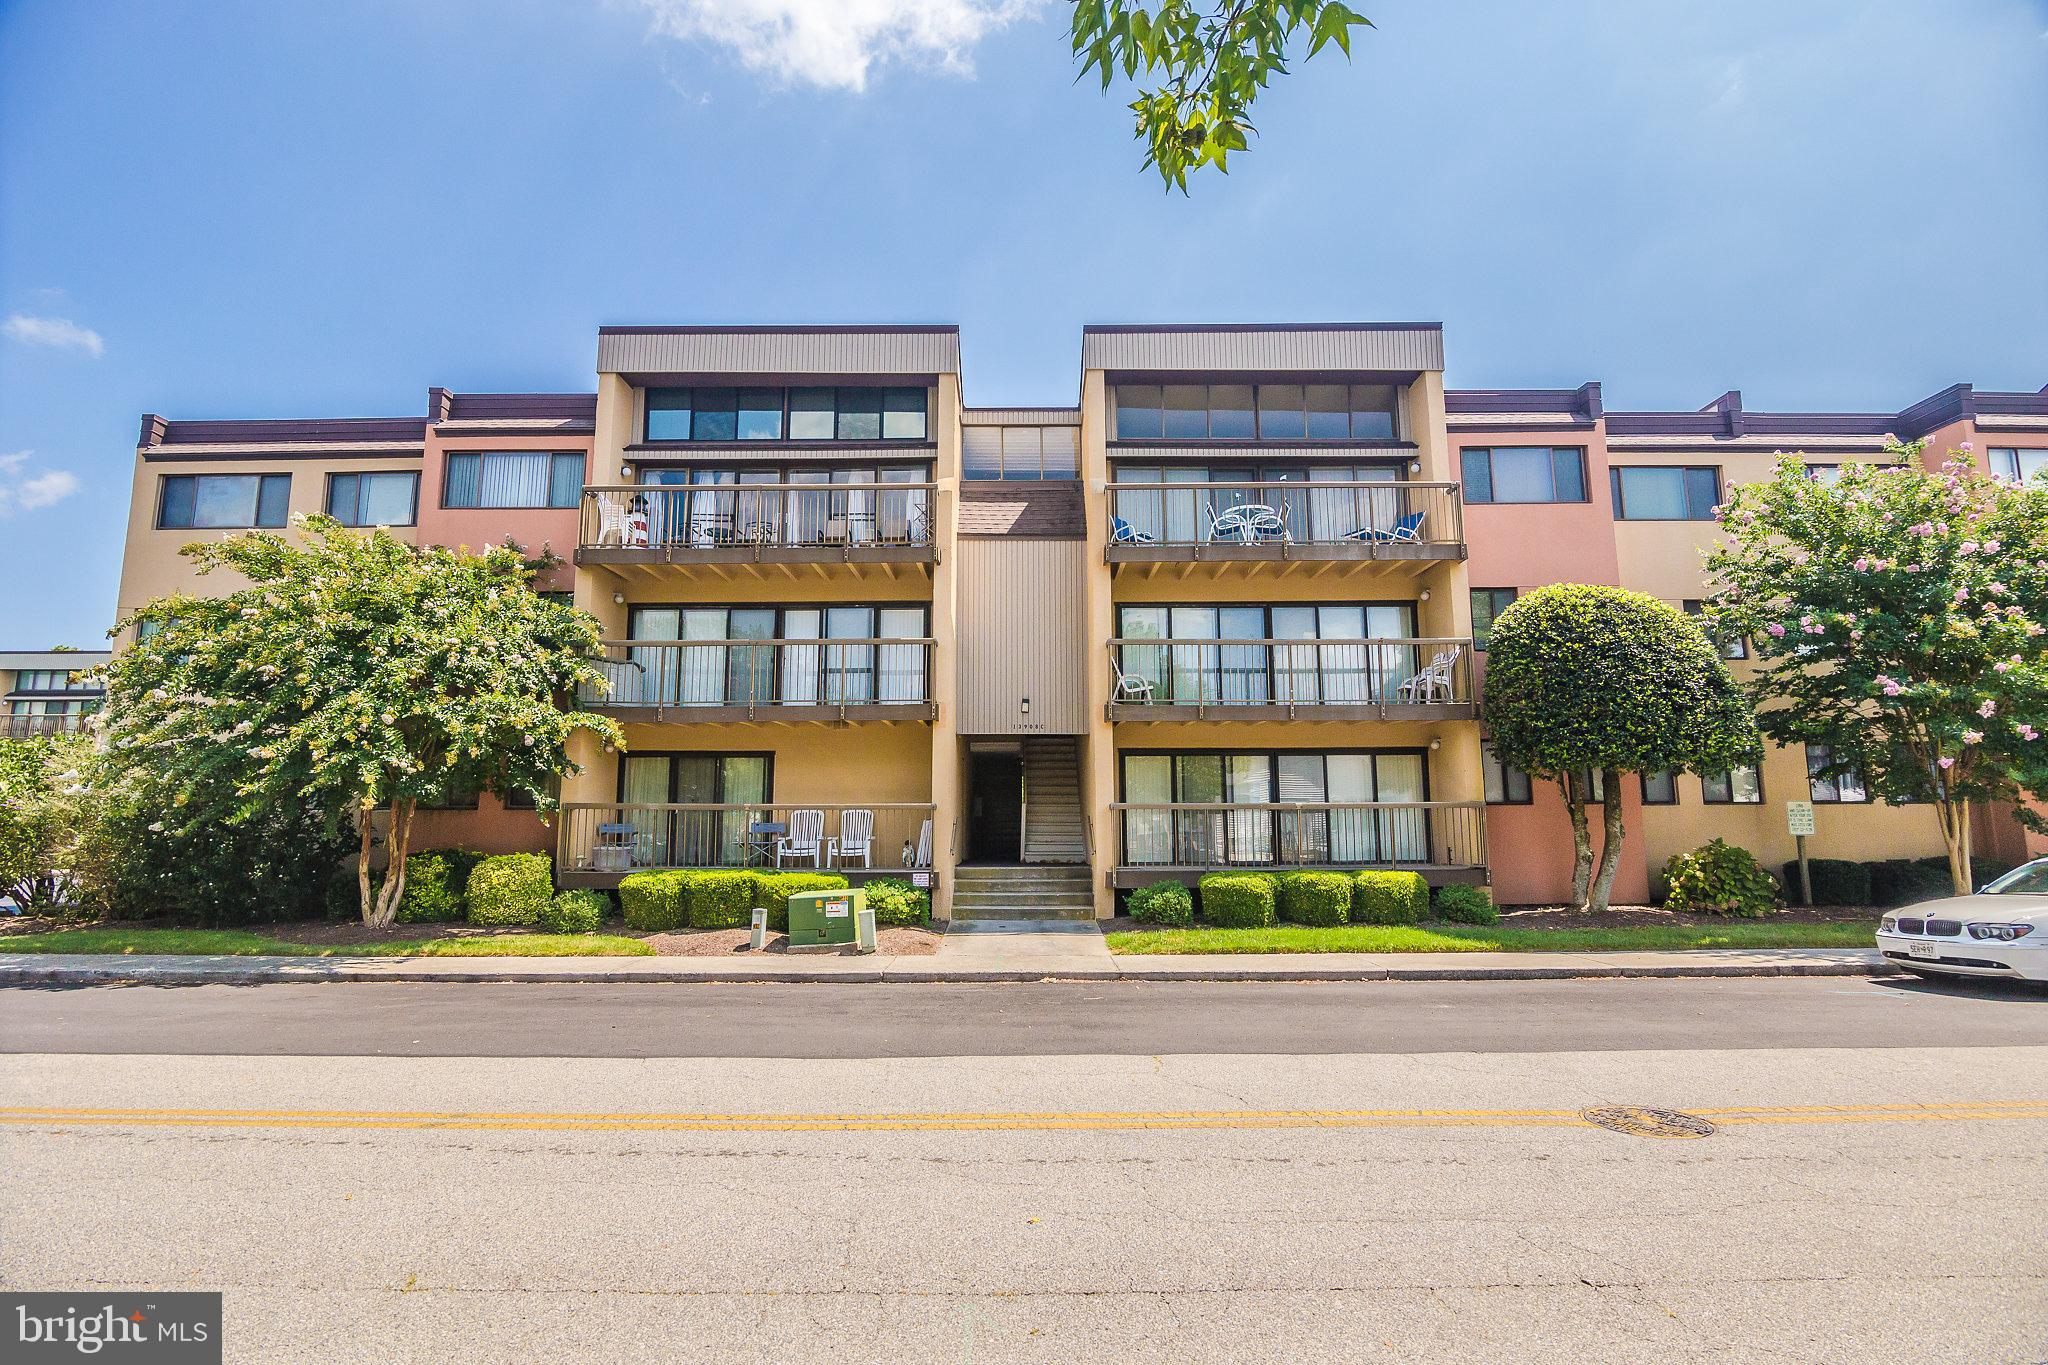 Move in ready 3 bedroom 2 bath condo on the 3rd floor. Beautiful views overlooking Caine Woods to the west. Short distance to the beach. Quiet neighborhood. Being sold fully furnished. New Carrier HVAC unit installed less than a year ago with 10 year transferable warranty.  Washer Hook-Up in owners closet and dryer vent can easily be run as well. Owner uses frequently, but can be shown on short notice (2 hours) Contact Jeffrey at 410-251-2196 $2000 SPECIAL ASSESSMENT FOR STAIRS AND POOL RESURFACING.